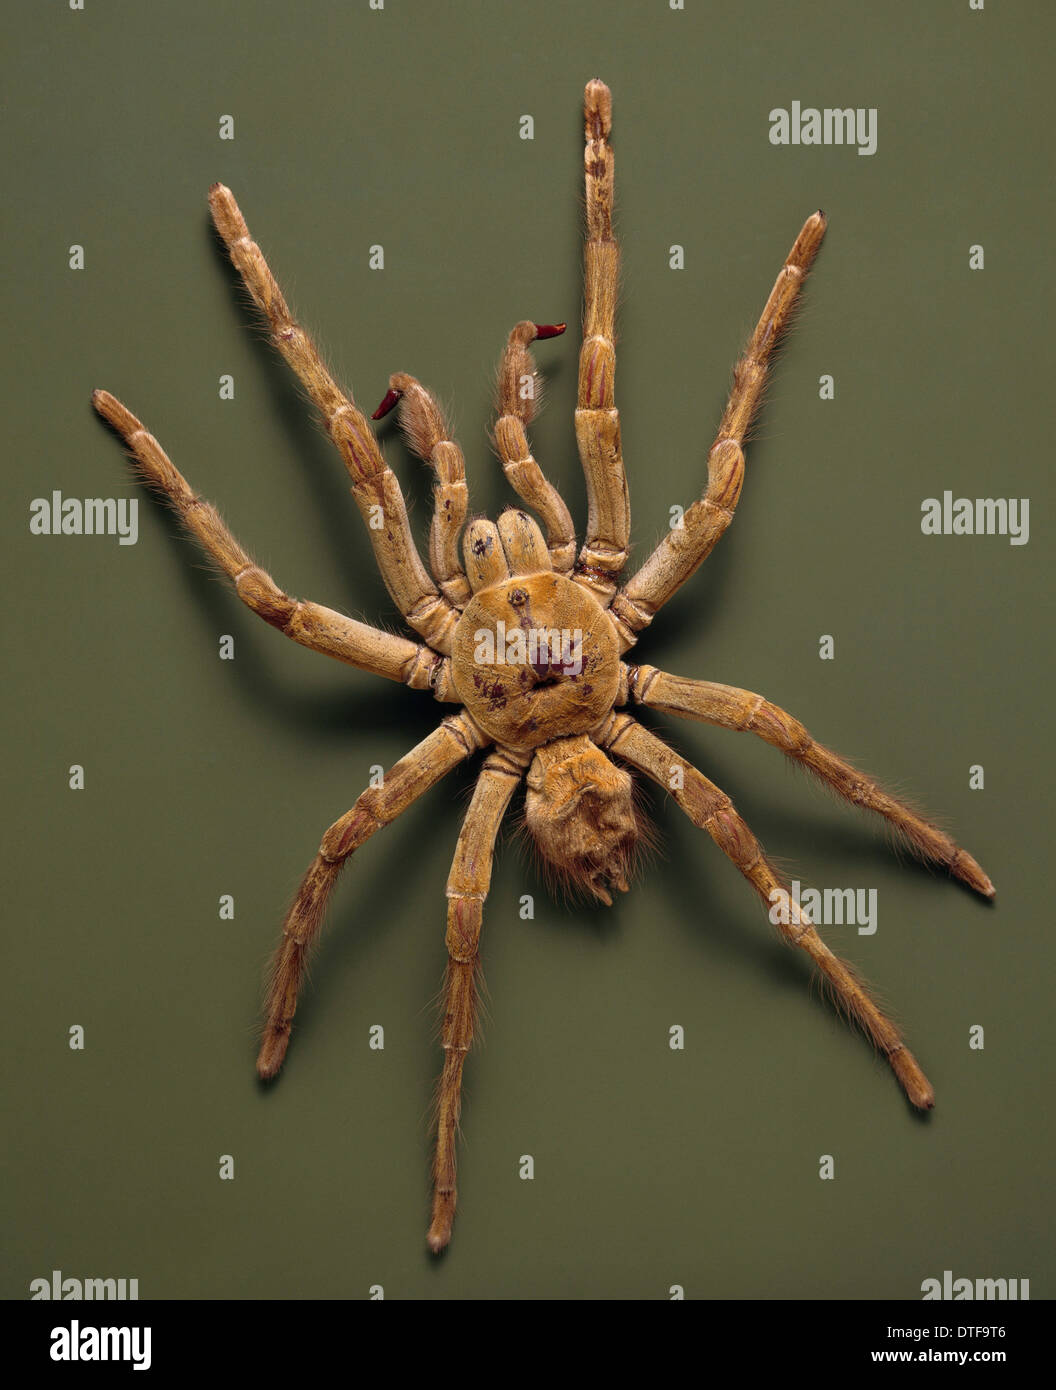 Tarantula Anatomy Stock Photos & Tarantula Anatomy Stock Images - Alamy